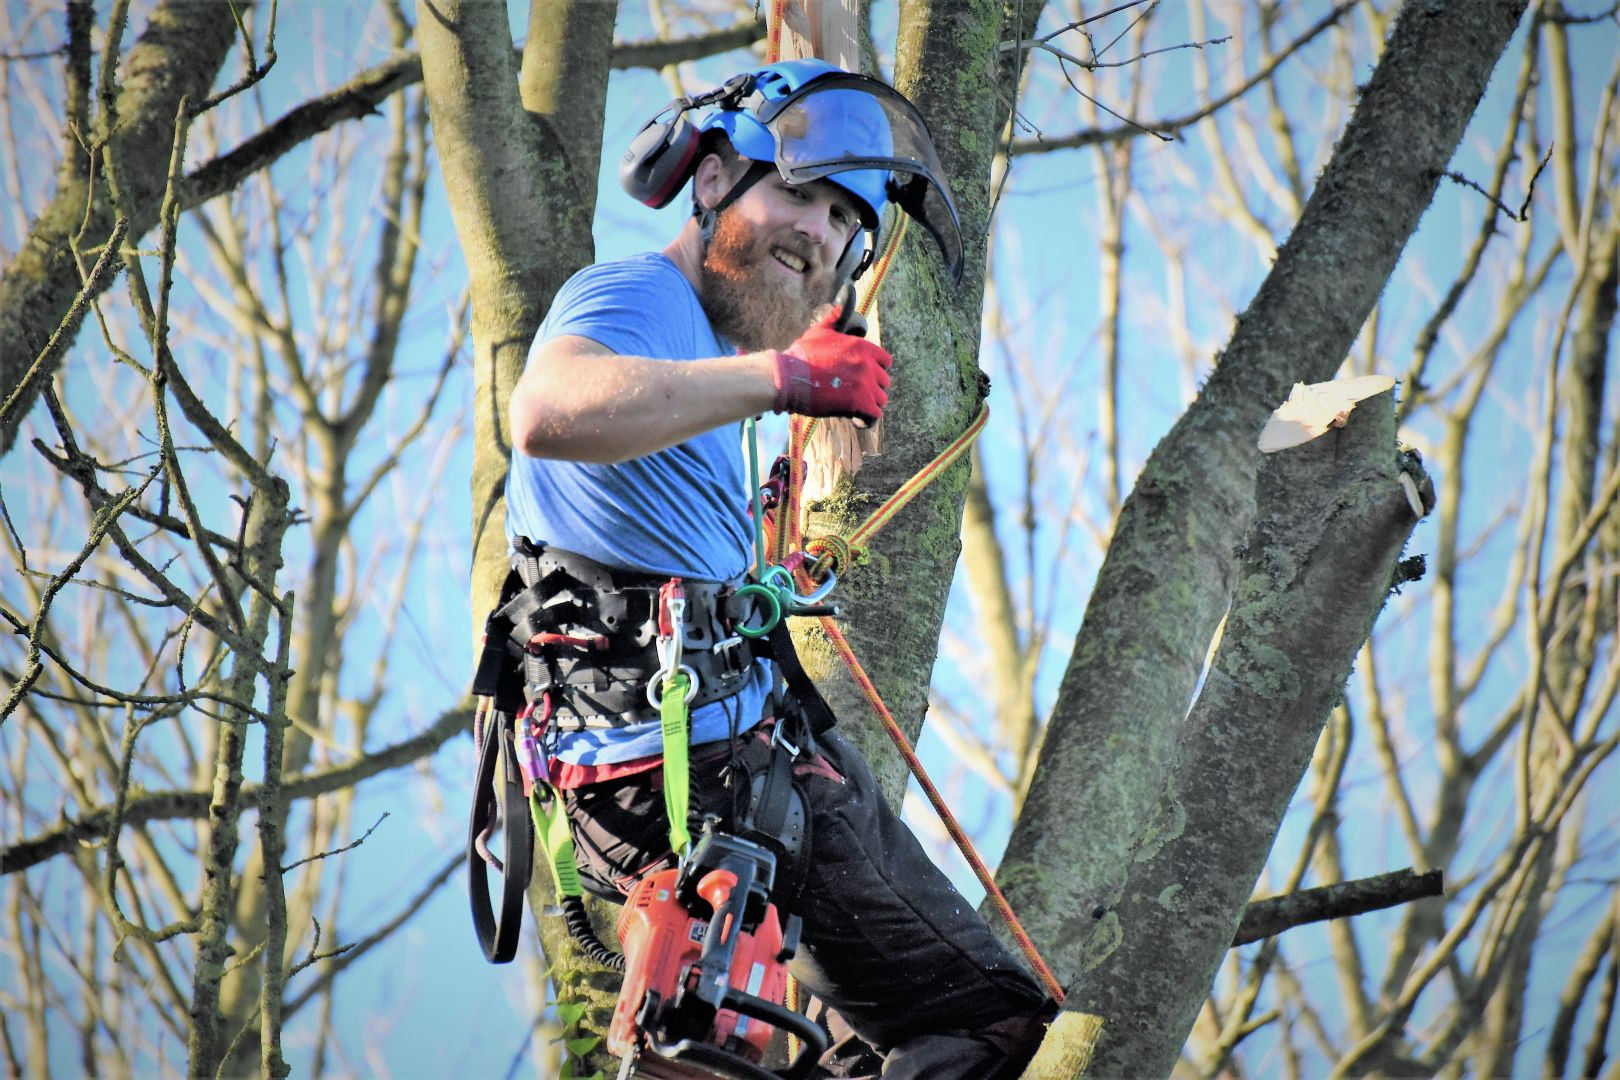 Weymouth tree surgery, emergency tree work, Weymouth tree surgeons, tree surgeons Weymouth, storm damage, clearing storm damage, arborist, climbing arborist, emergency tree work, tree safety work, wood chipper, recycling, waste recycling